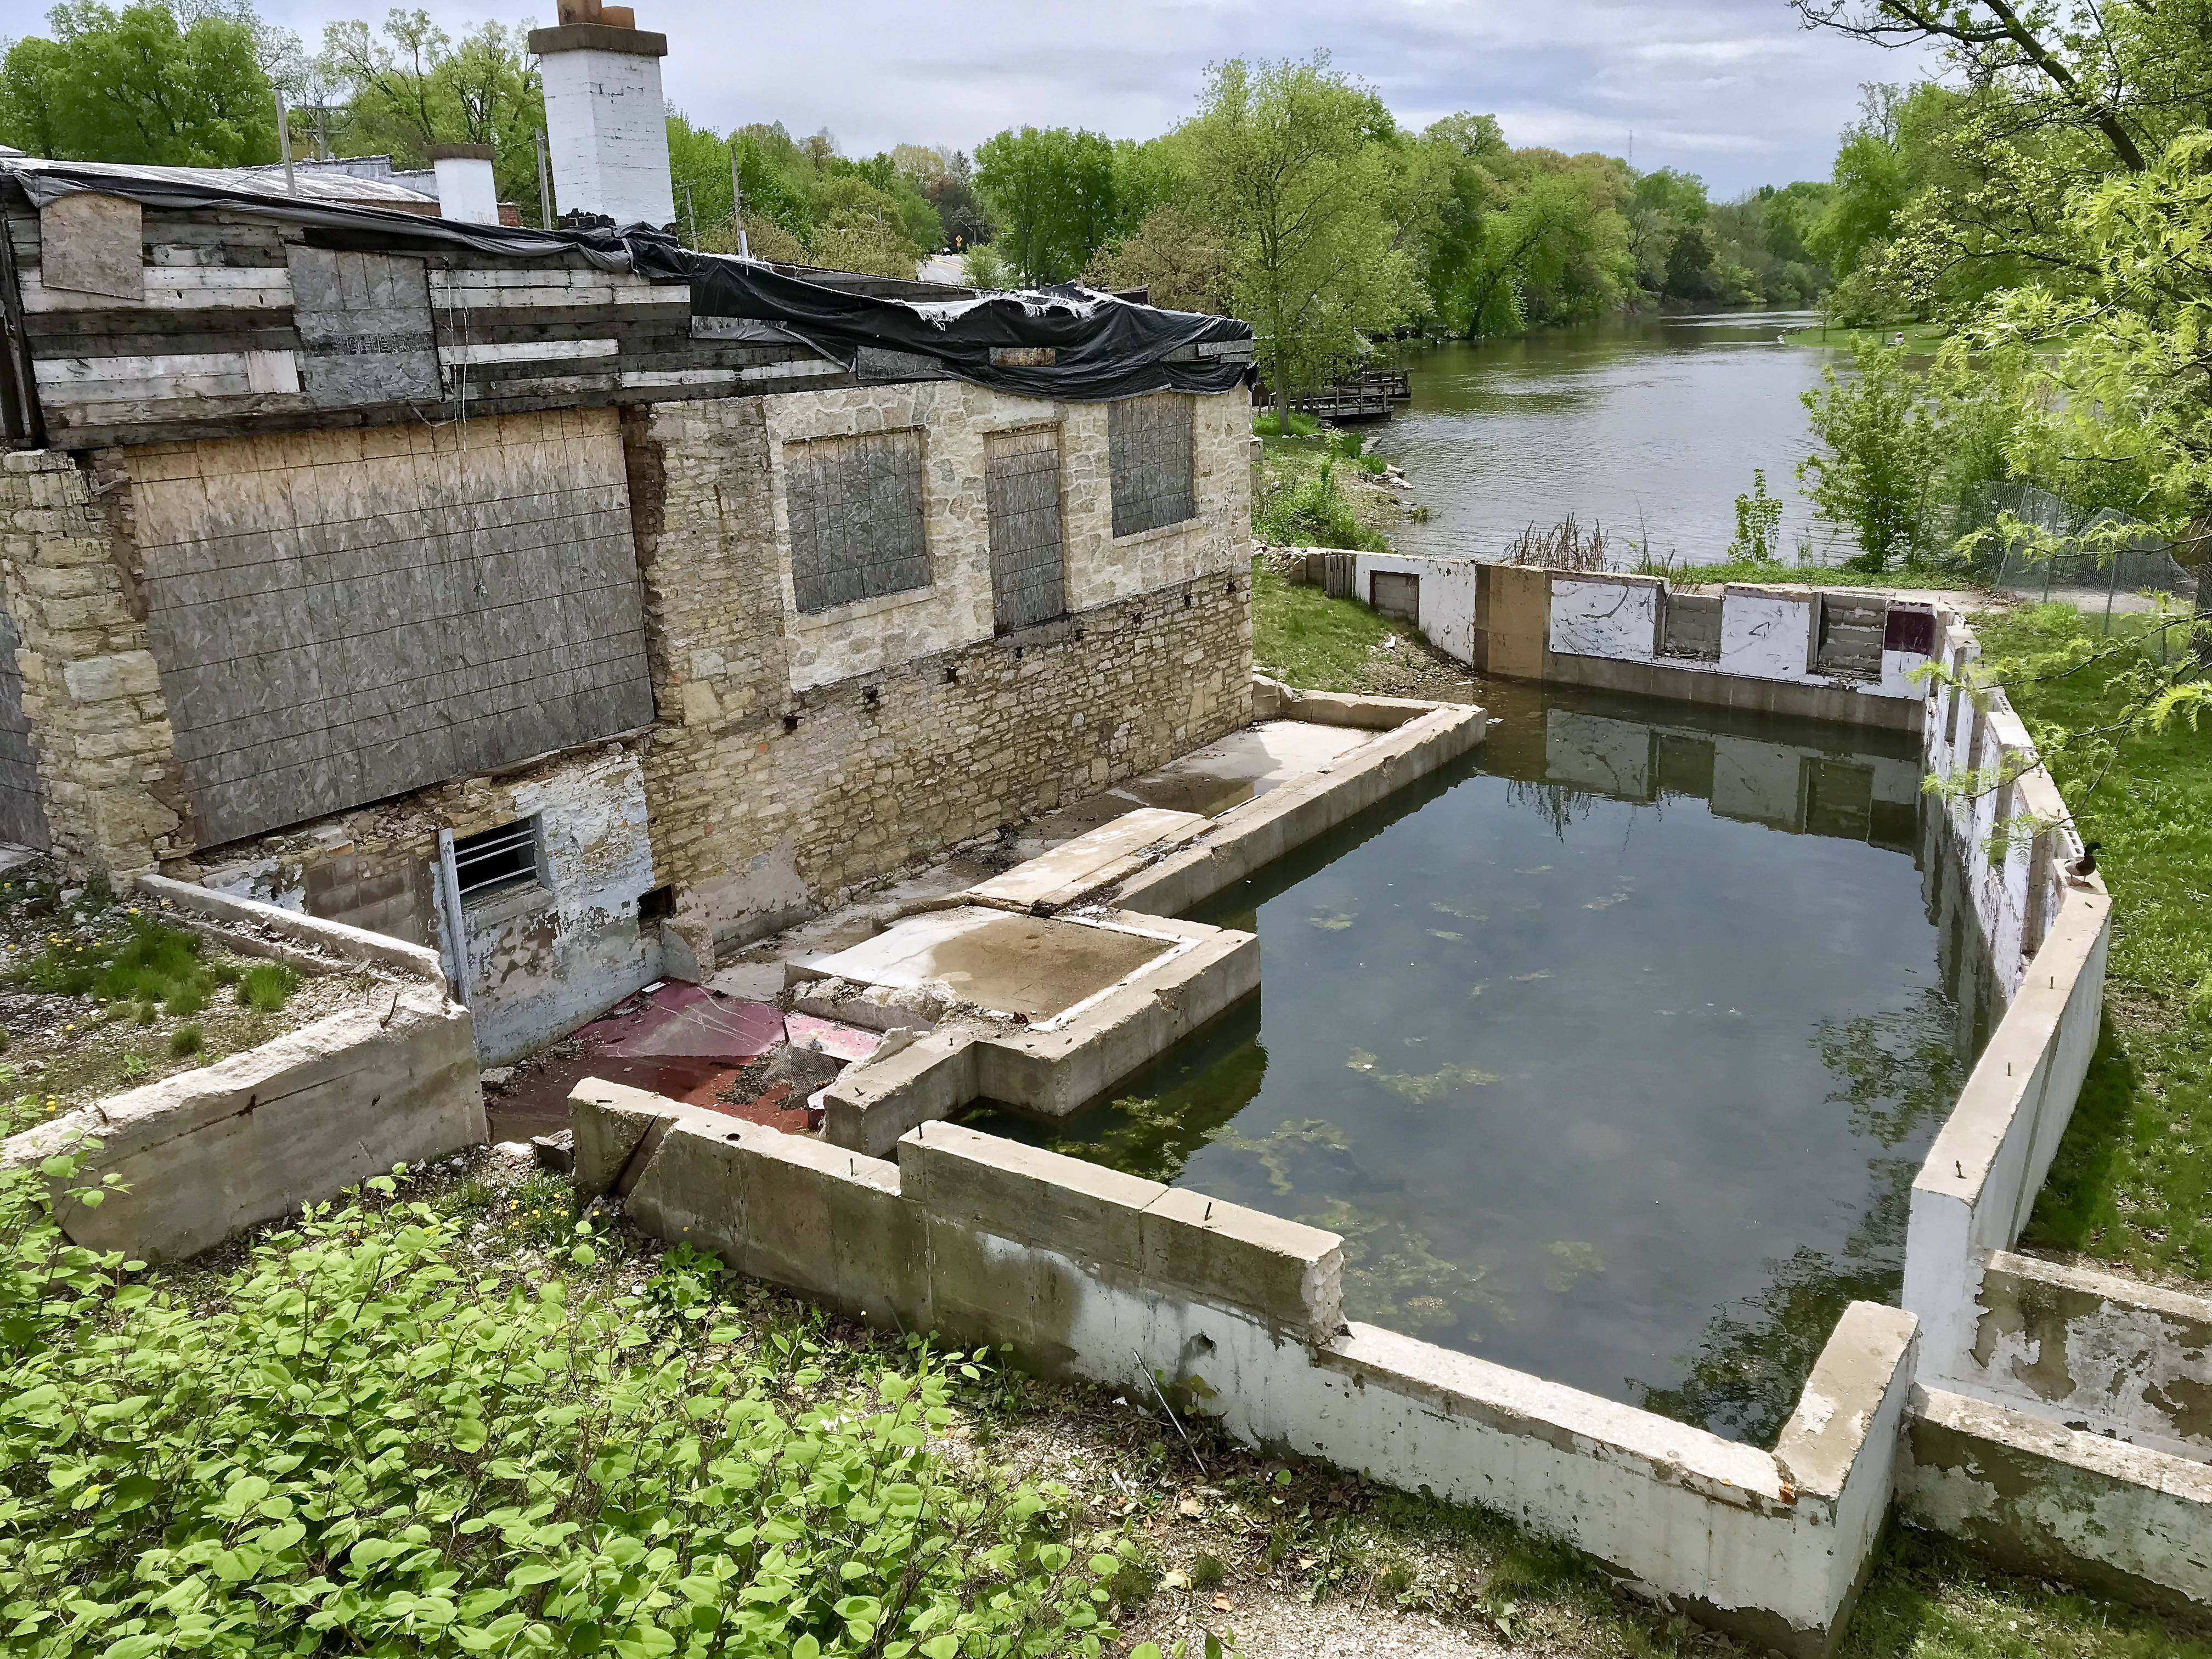 Daily Herald columnist Dave Heun wonders whether what remains of the Mill Race Inn in Geneva is worth preserving or should be torn down to make way for a new development.